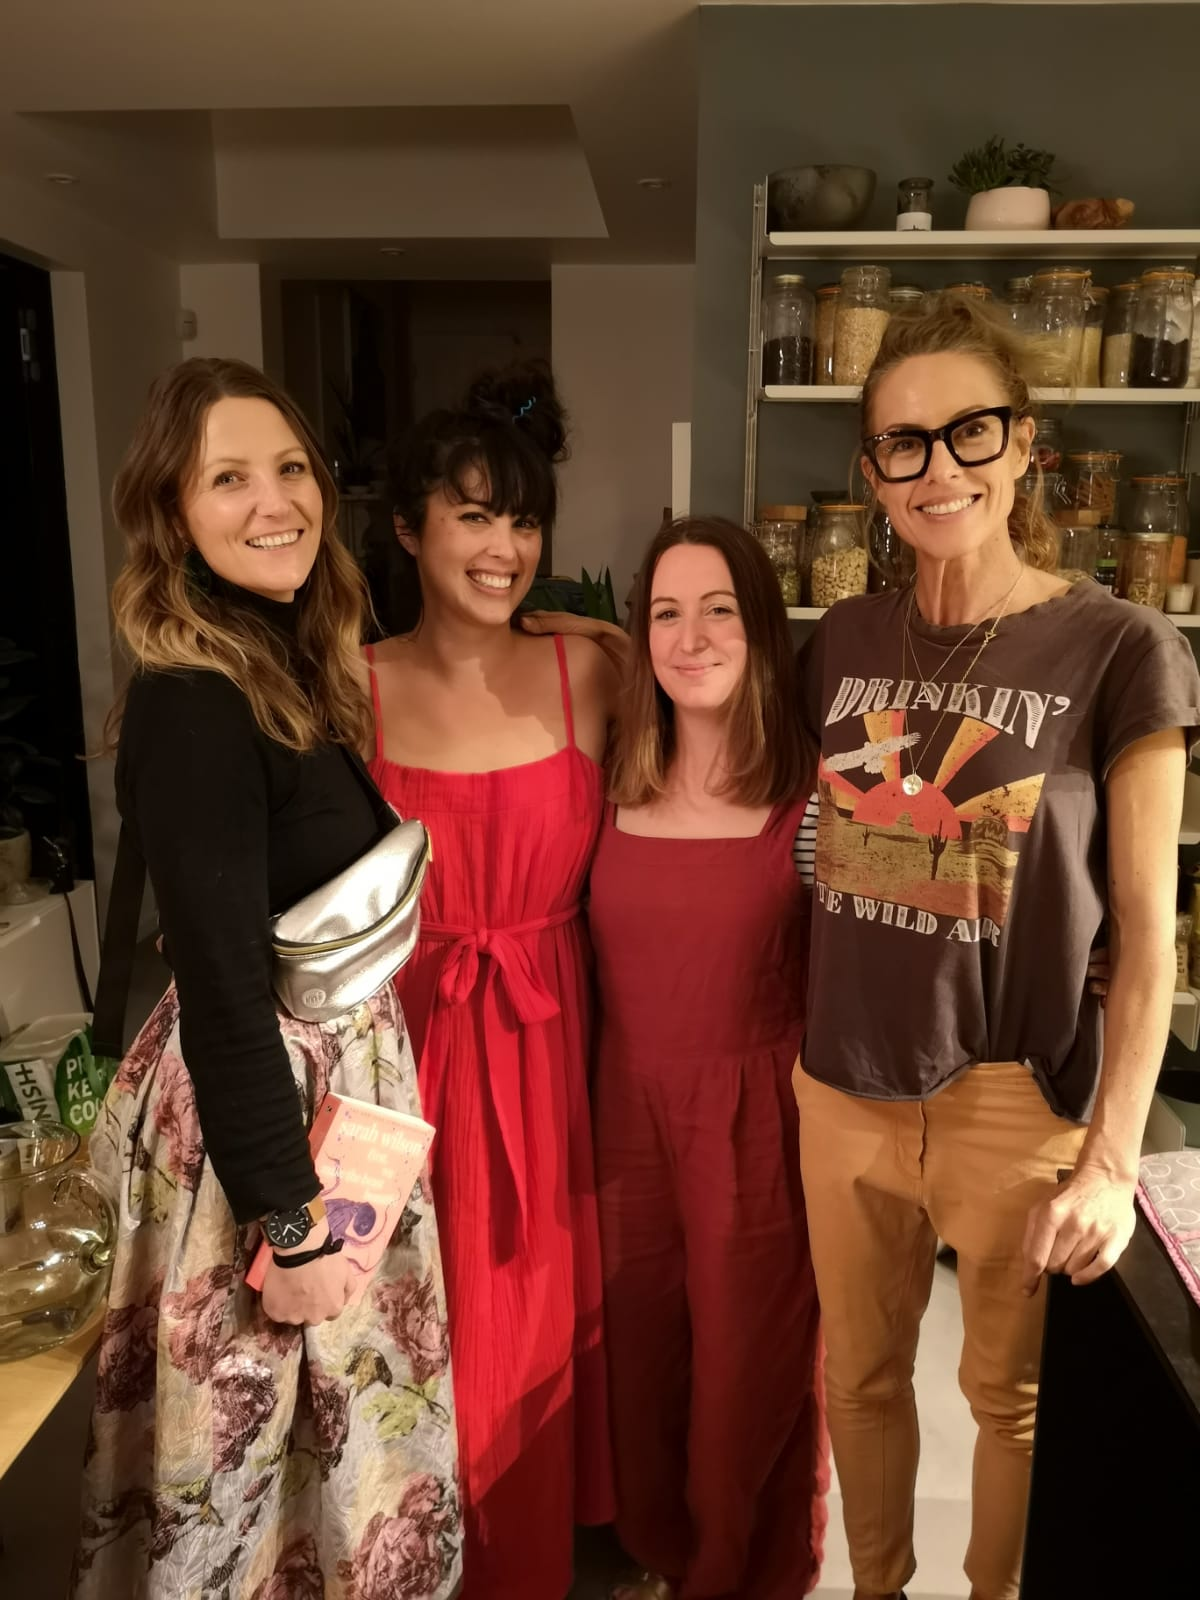 Dinner party date at Melissa Hemsley's house to celebrate the launch of Sarah Wilson's paperback here in the UK